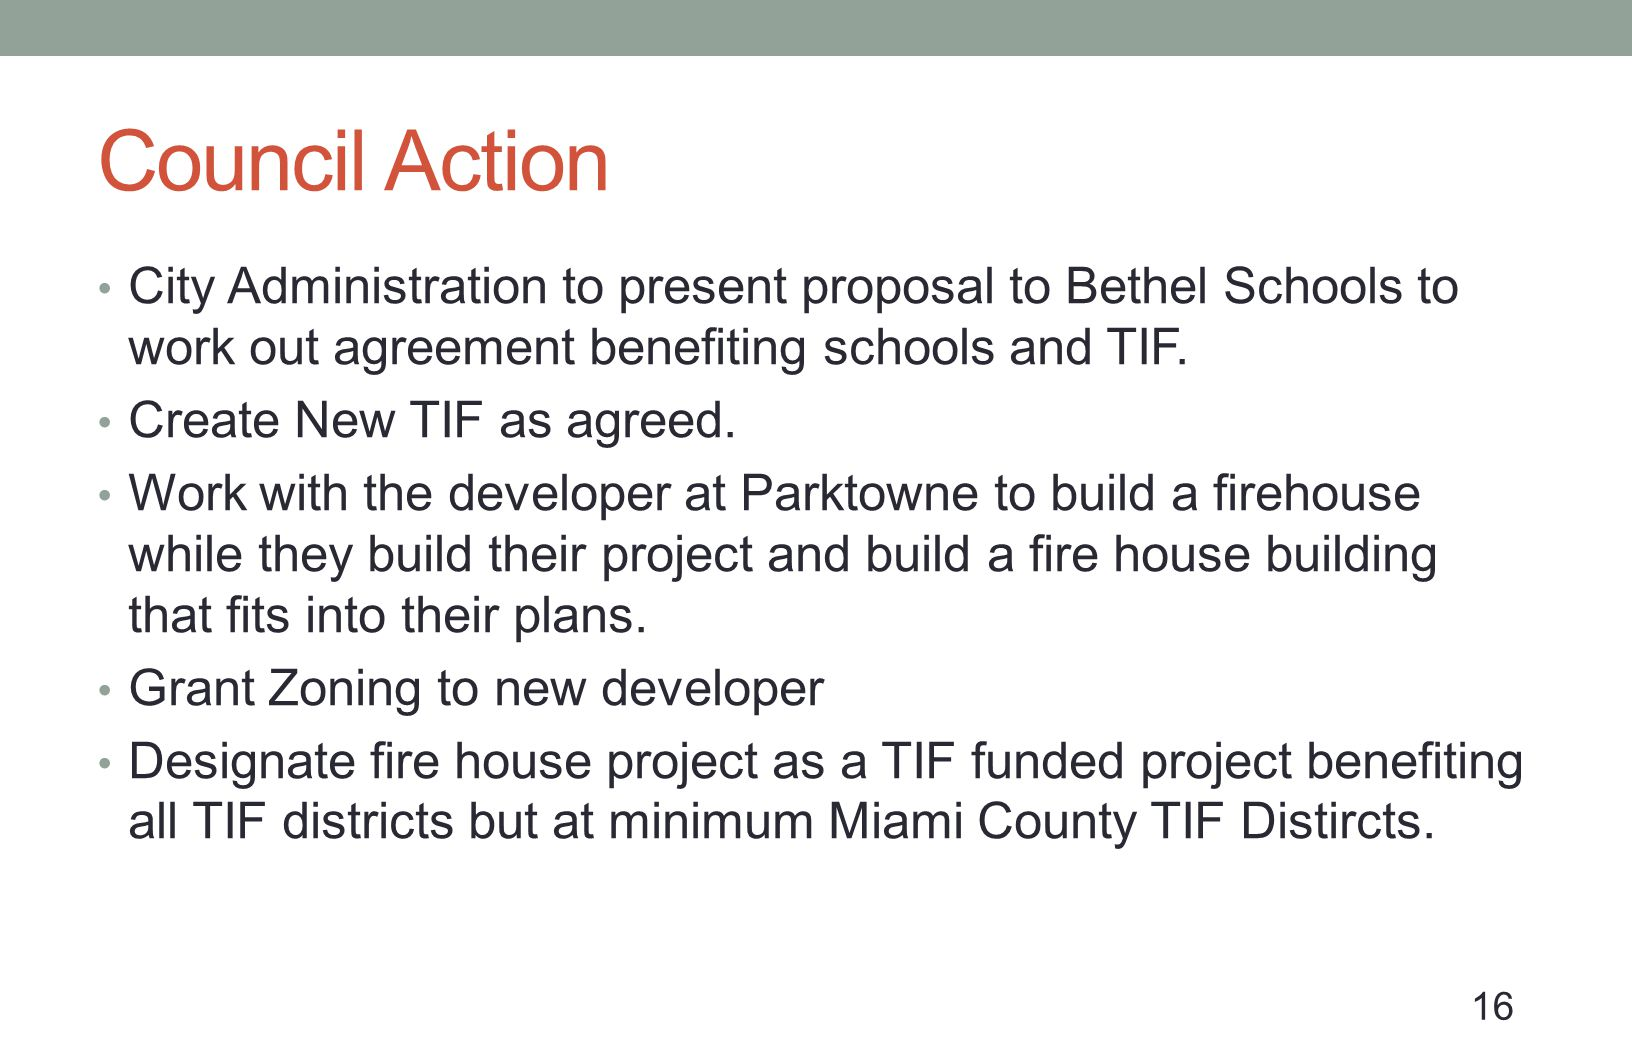 Council Action City Administration to present proposal to Bethel Schools to work out agreement benefiting schools and TIF. Create New TIF as agreed. W